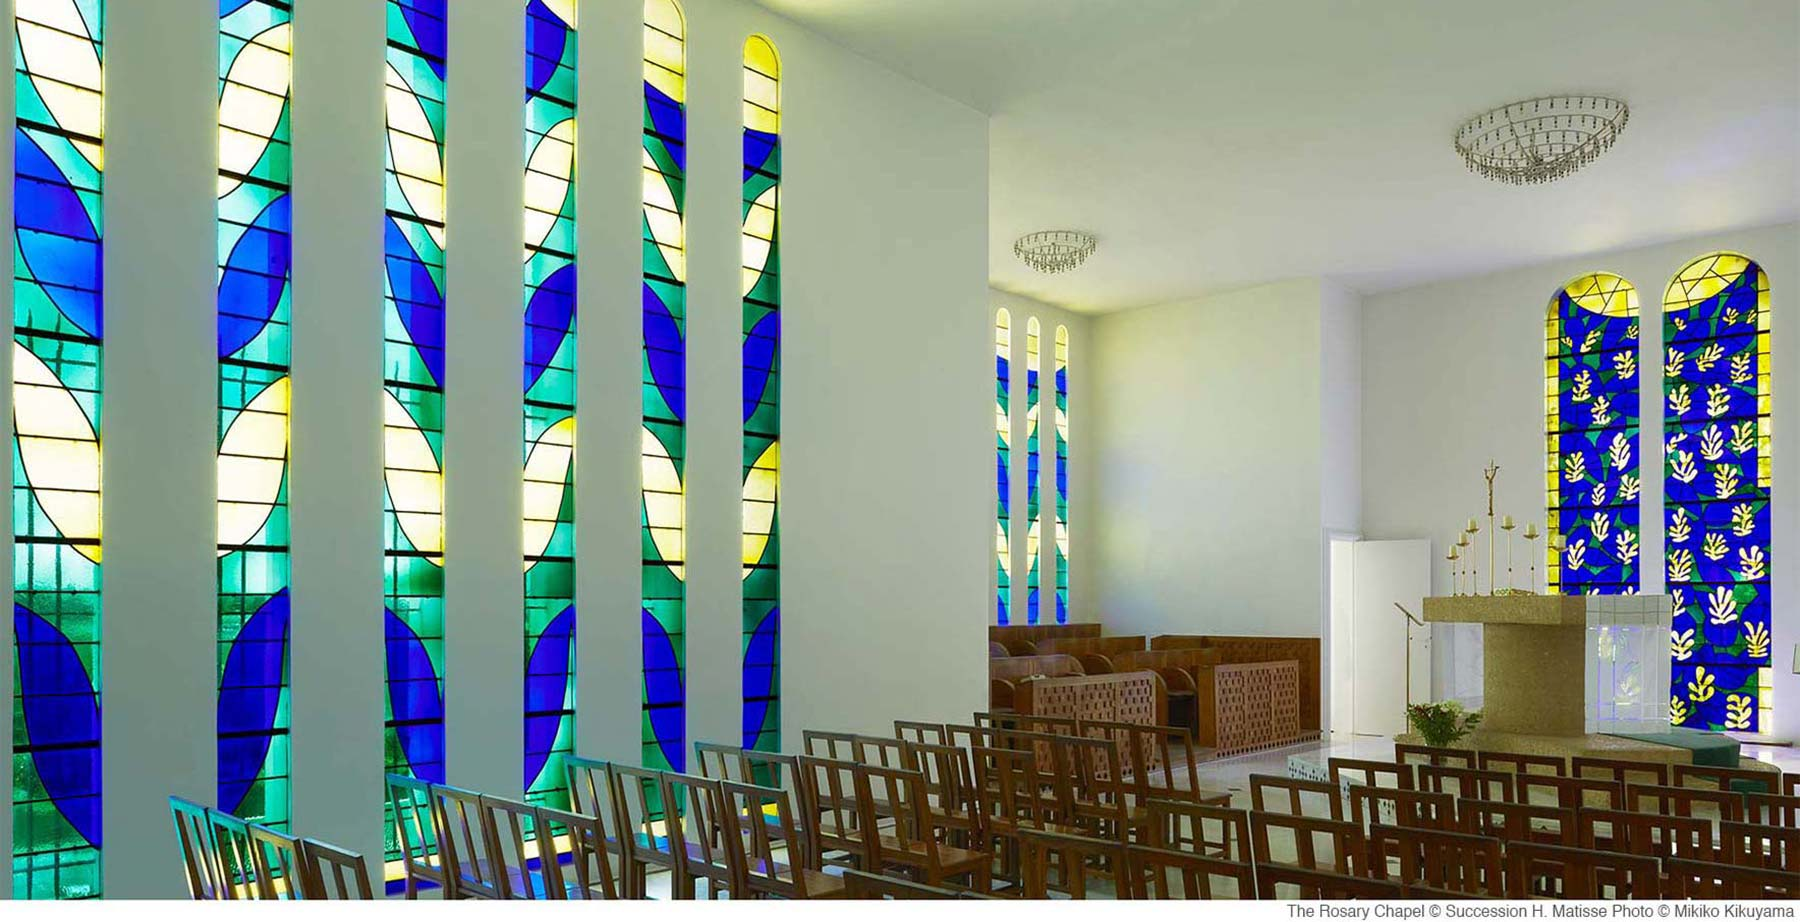 The Rosary Chapel 169 Succession H Matisse Photo 169 Mikiko